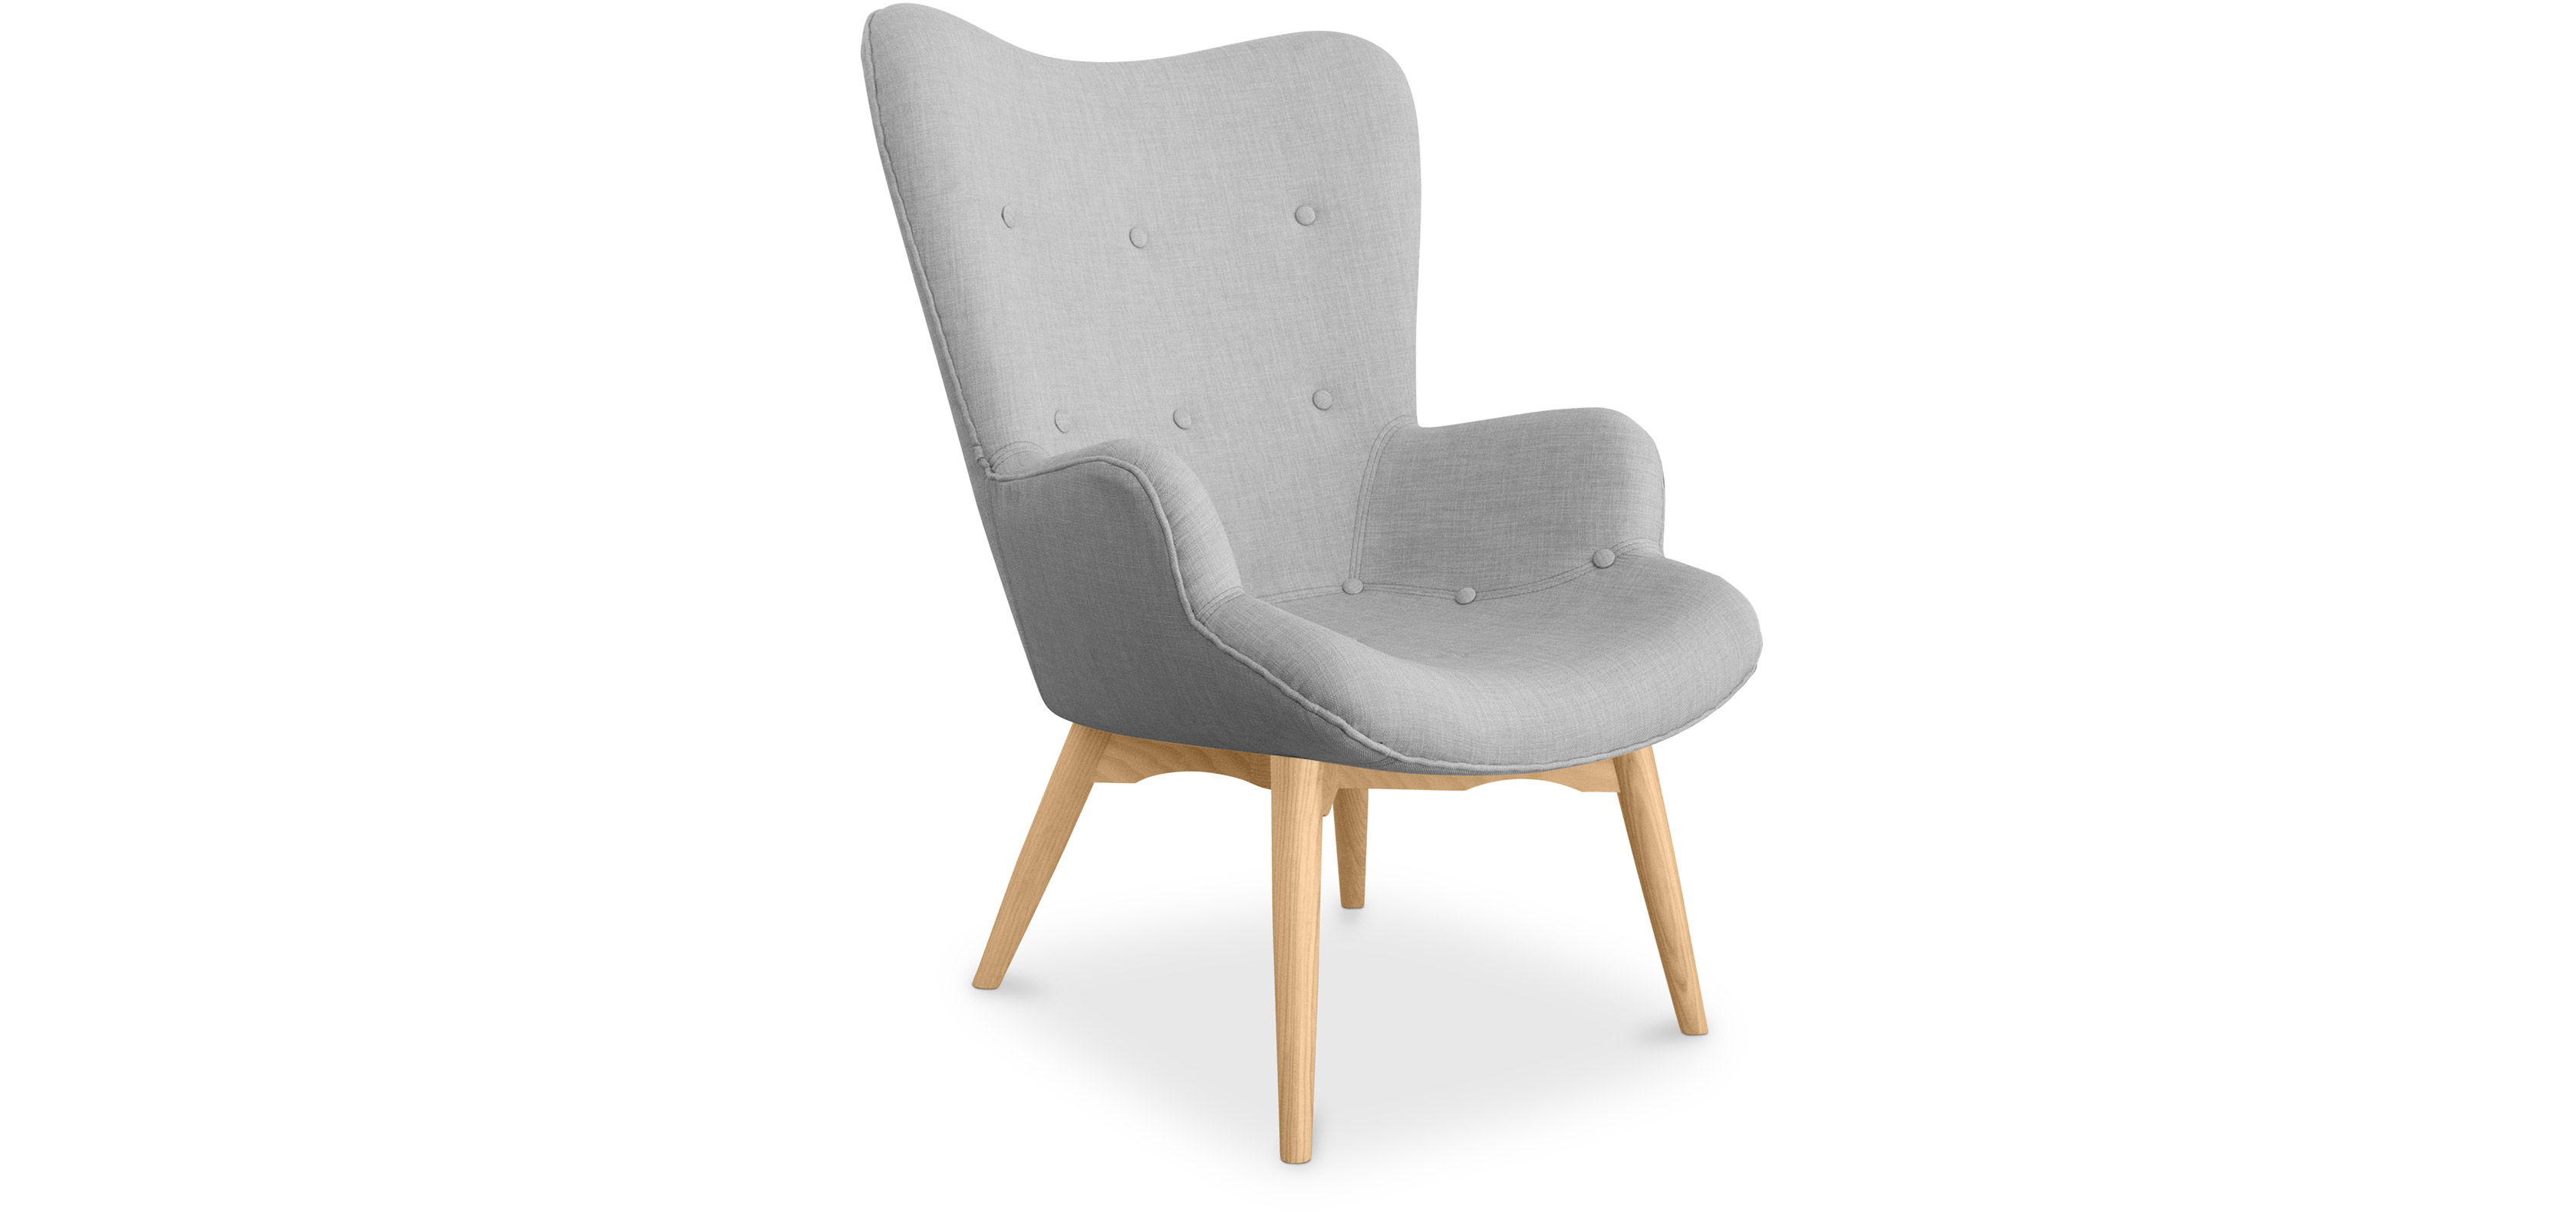 Sessel Skandinavisches Design Contor Lounge Sessel Skandinavisches Design